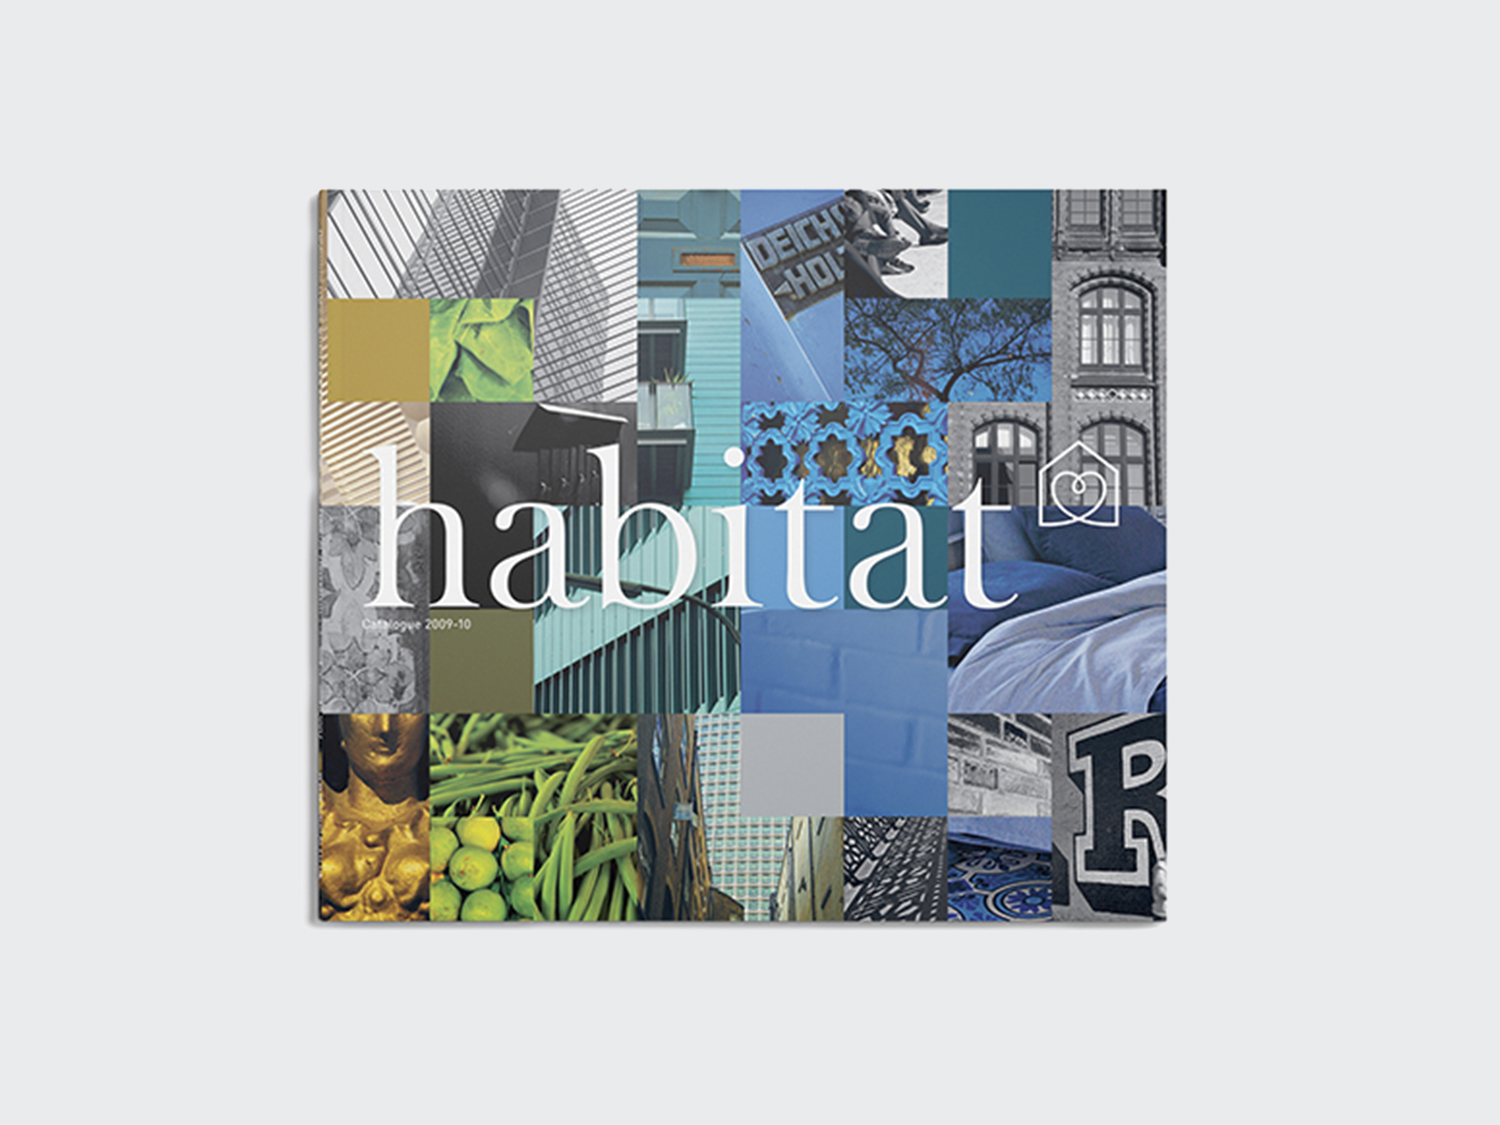 Habitat Catalogue 2009/10. 5 Years as Creative Director for Brand and Product.